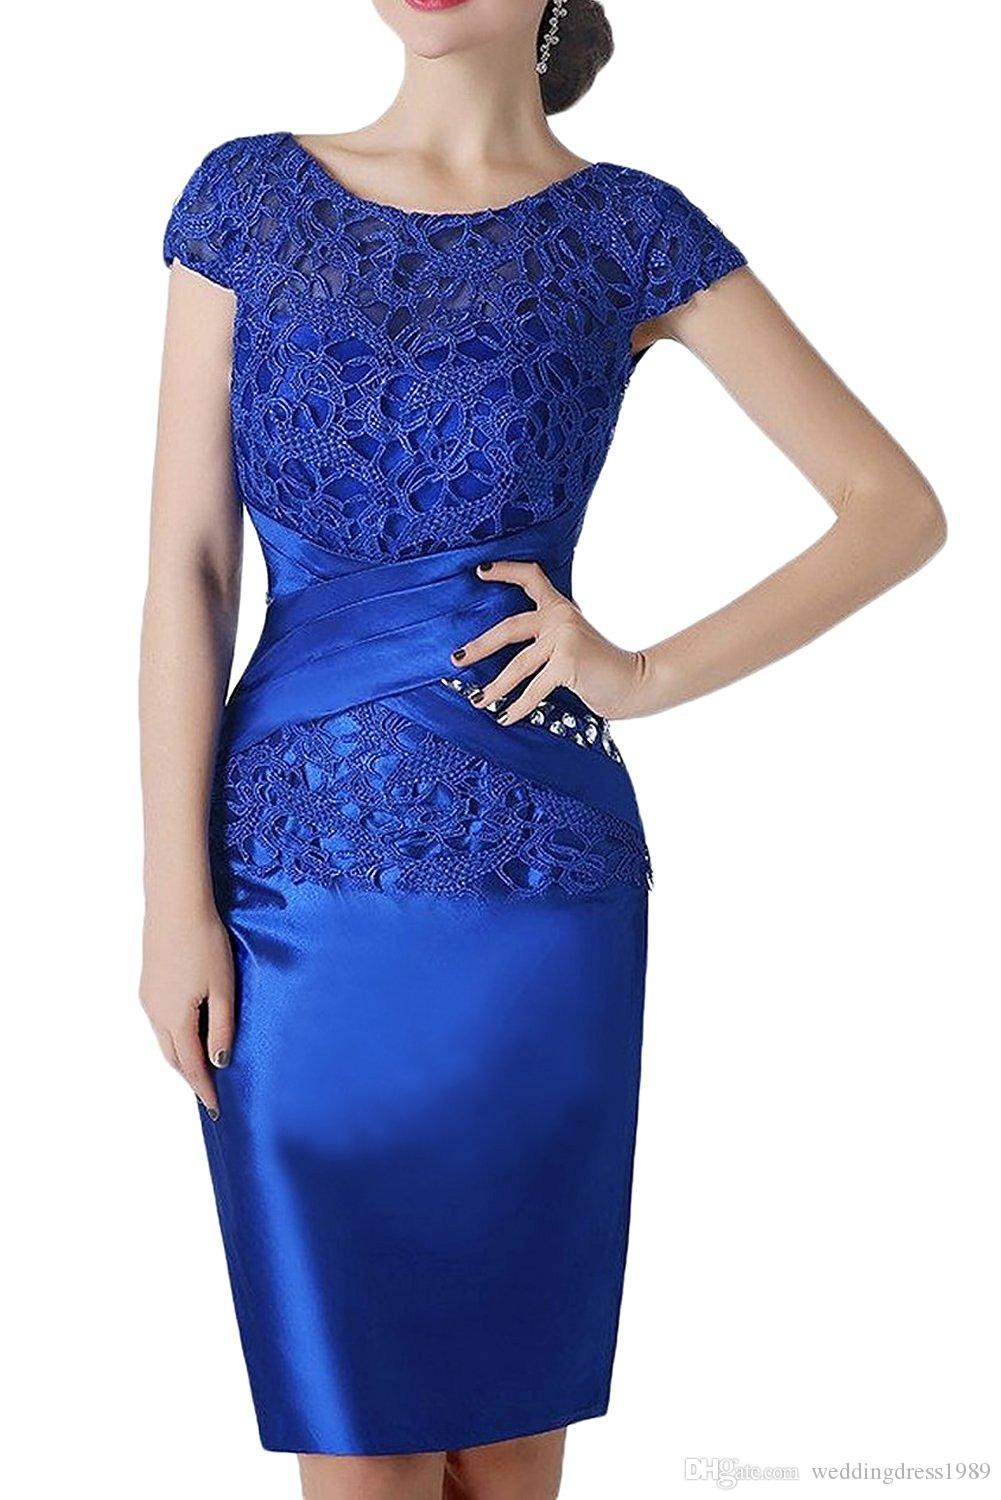 Royal Blue Lace Short Mutter Formelle Kleidung Mit Wrap Mutter des Bräutigams Hochzeit Gast Kleid Abend Mutter Der Braut Kleid Anzug Kleider